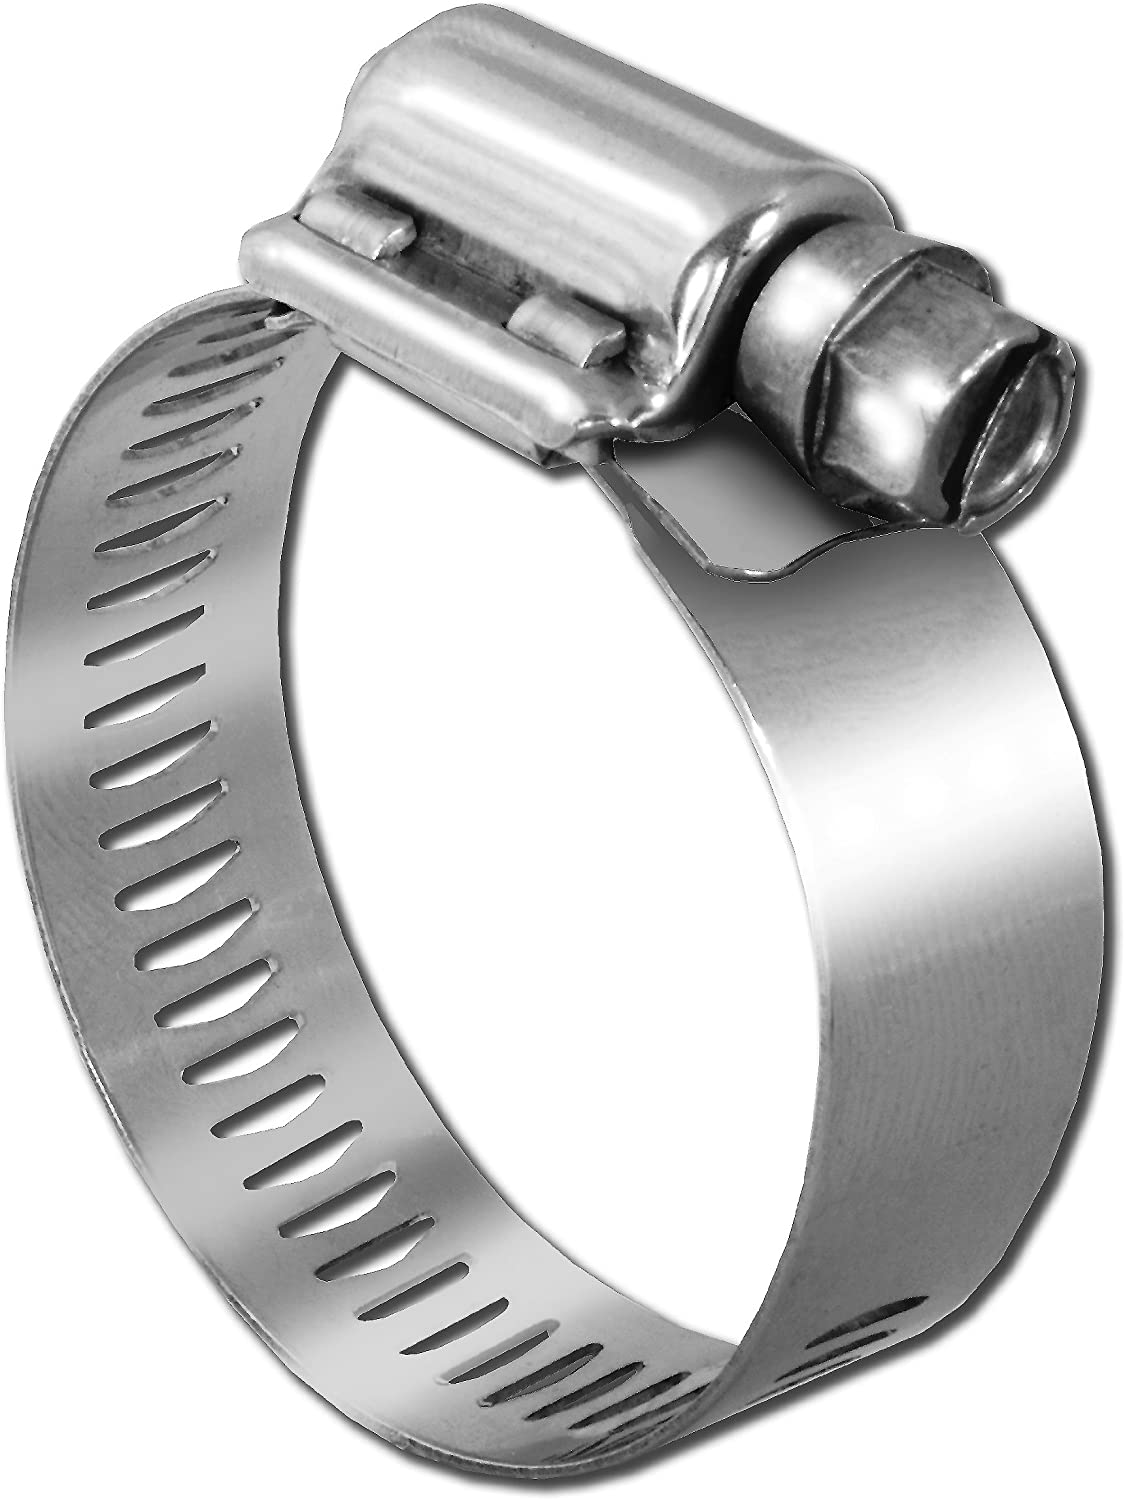 2-Pack Pro Tie 33601 SAE Size 028 Range 1-5//16-Inch-2-1//4-Inch Very Heavy Duty All Stainless Hose Clamp